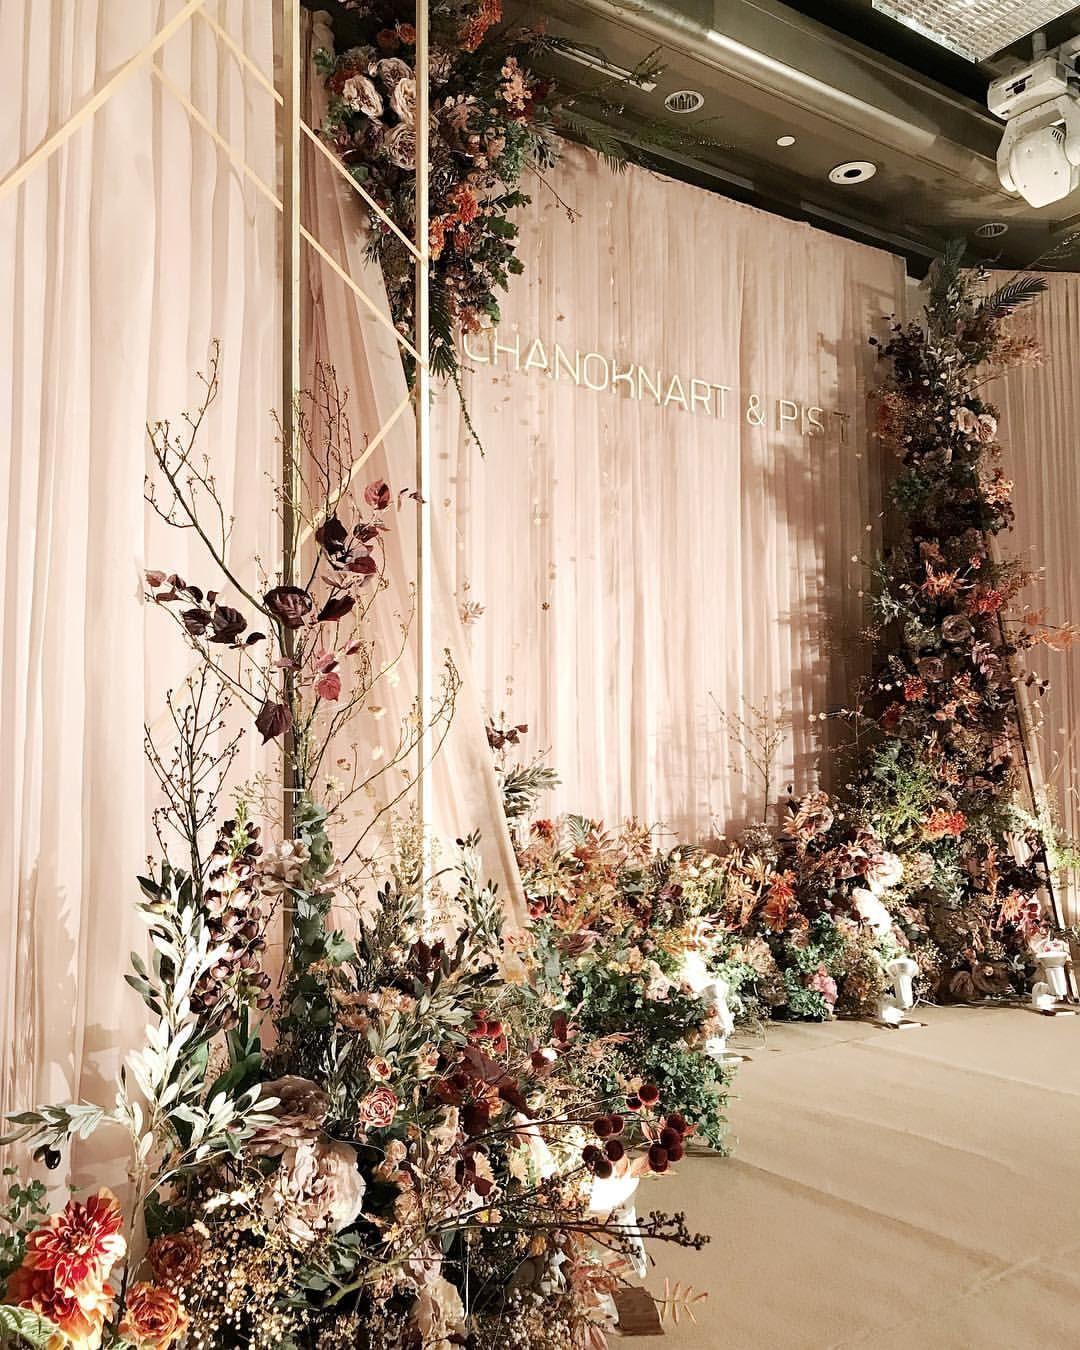 2 12 17 wedding decoration backdrop stage st regis bangkok 2 12 17 wedding decoration backdrop stage st regis bangkok 0818095459 call junglespirit Choice Image